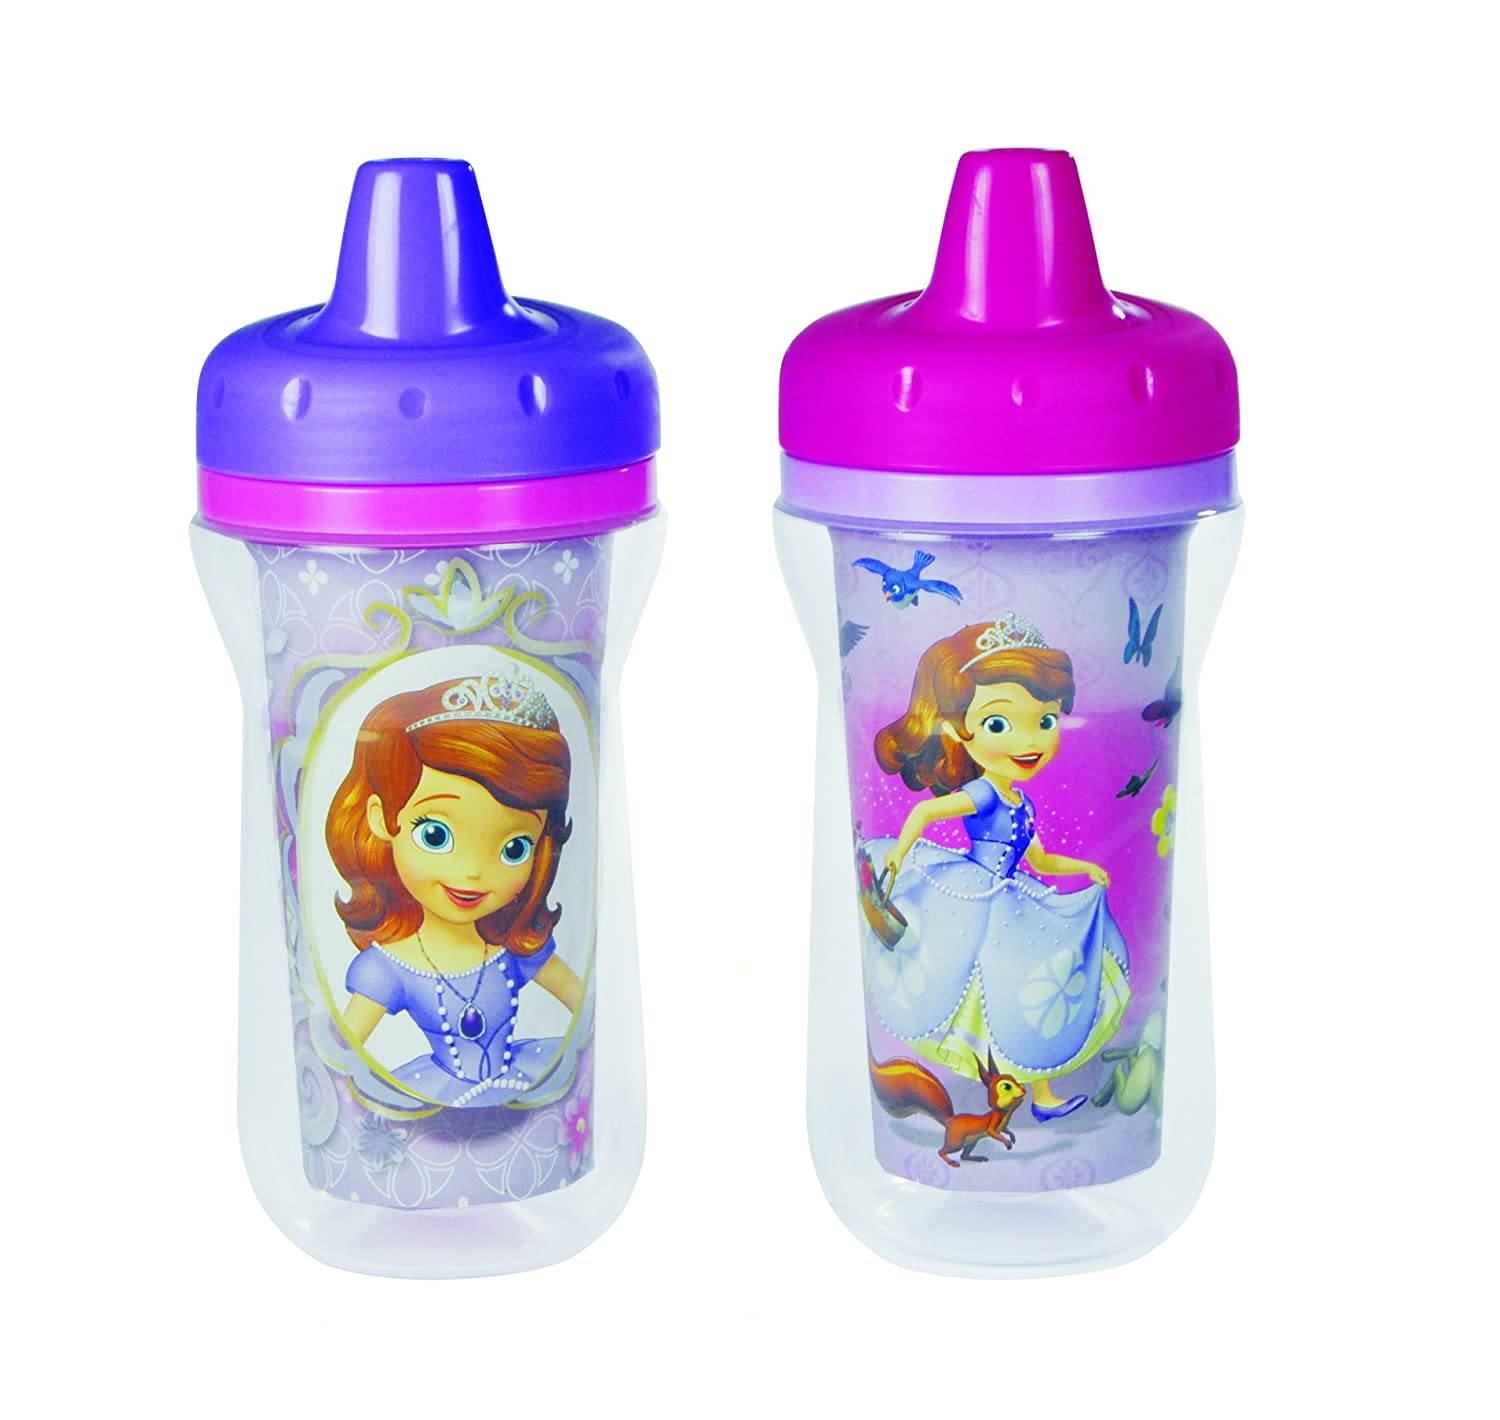 The First Years Disney Junior Sofia The First Insulated Sippy Cup, 2 Count TOMY Y10383A1